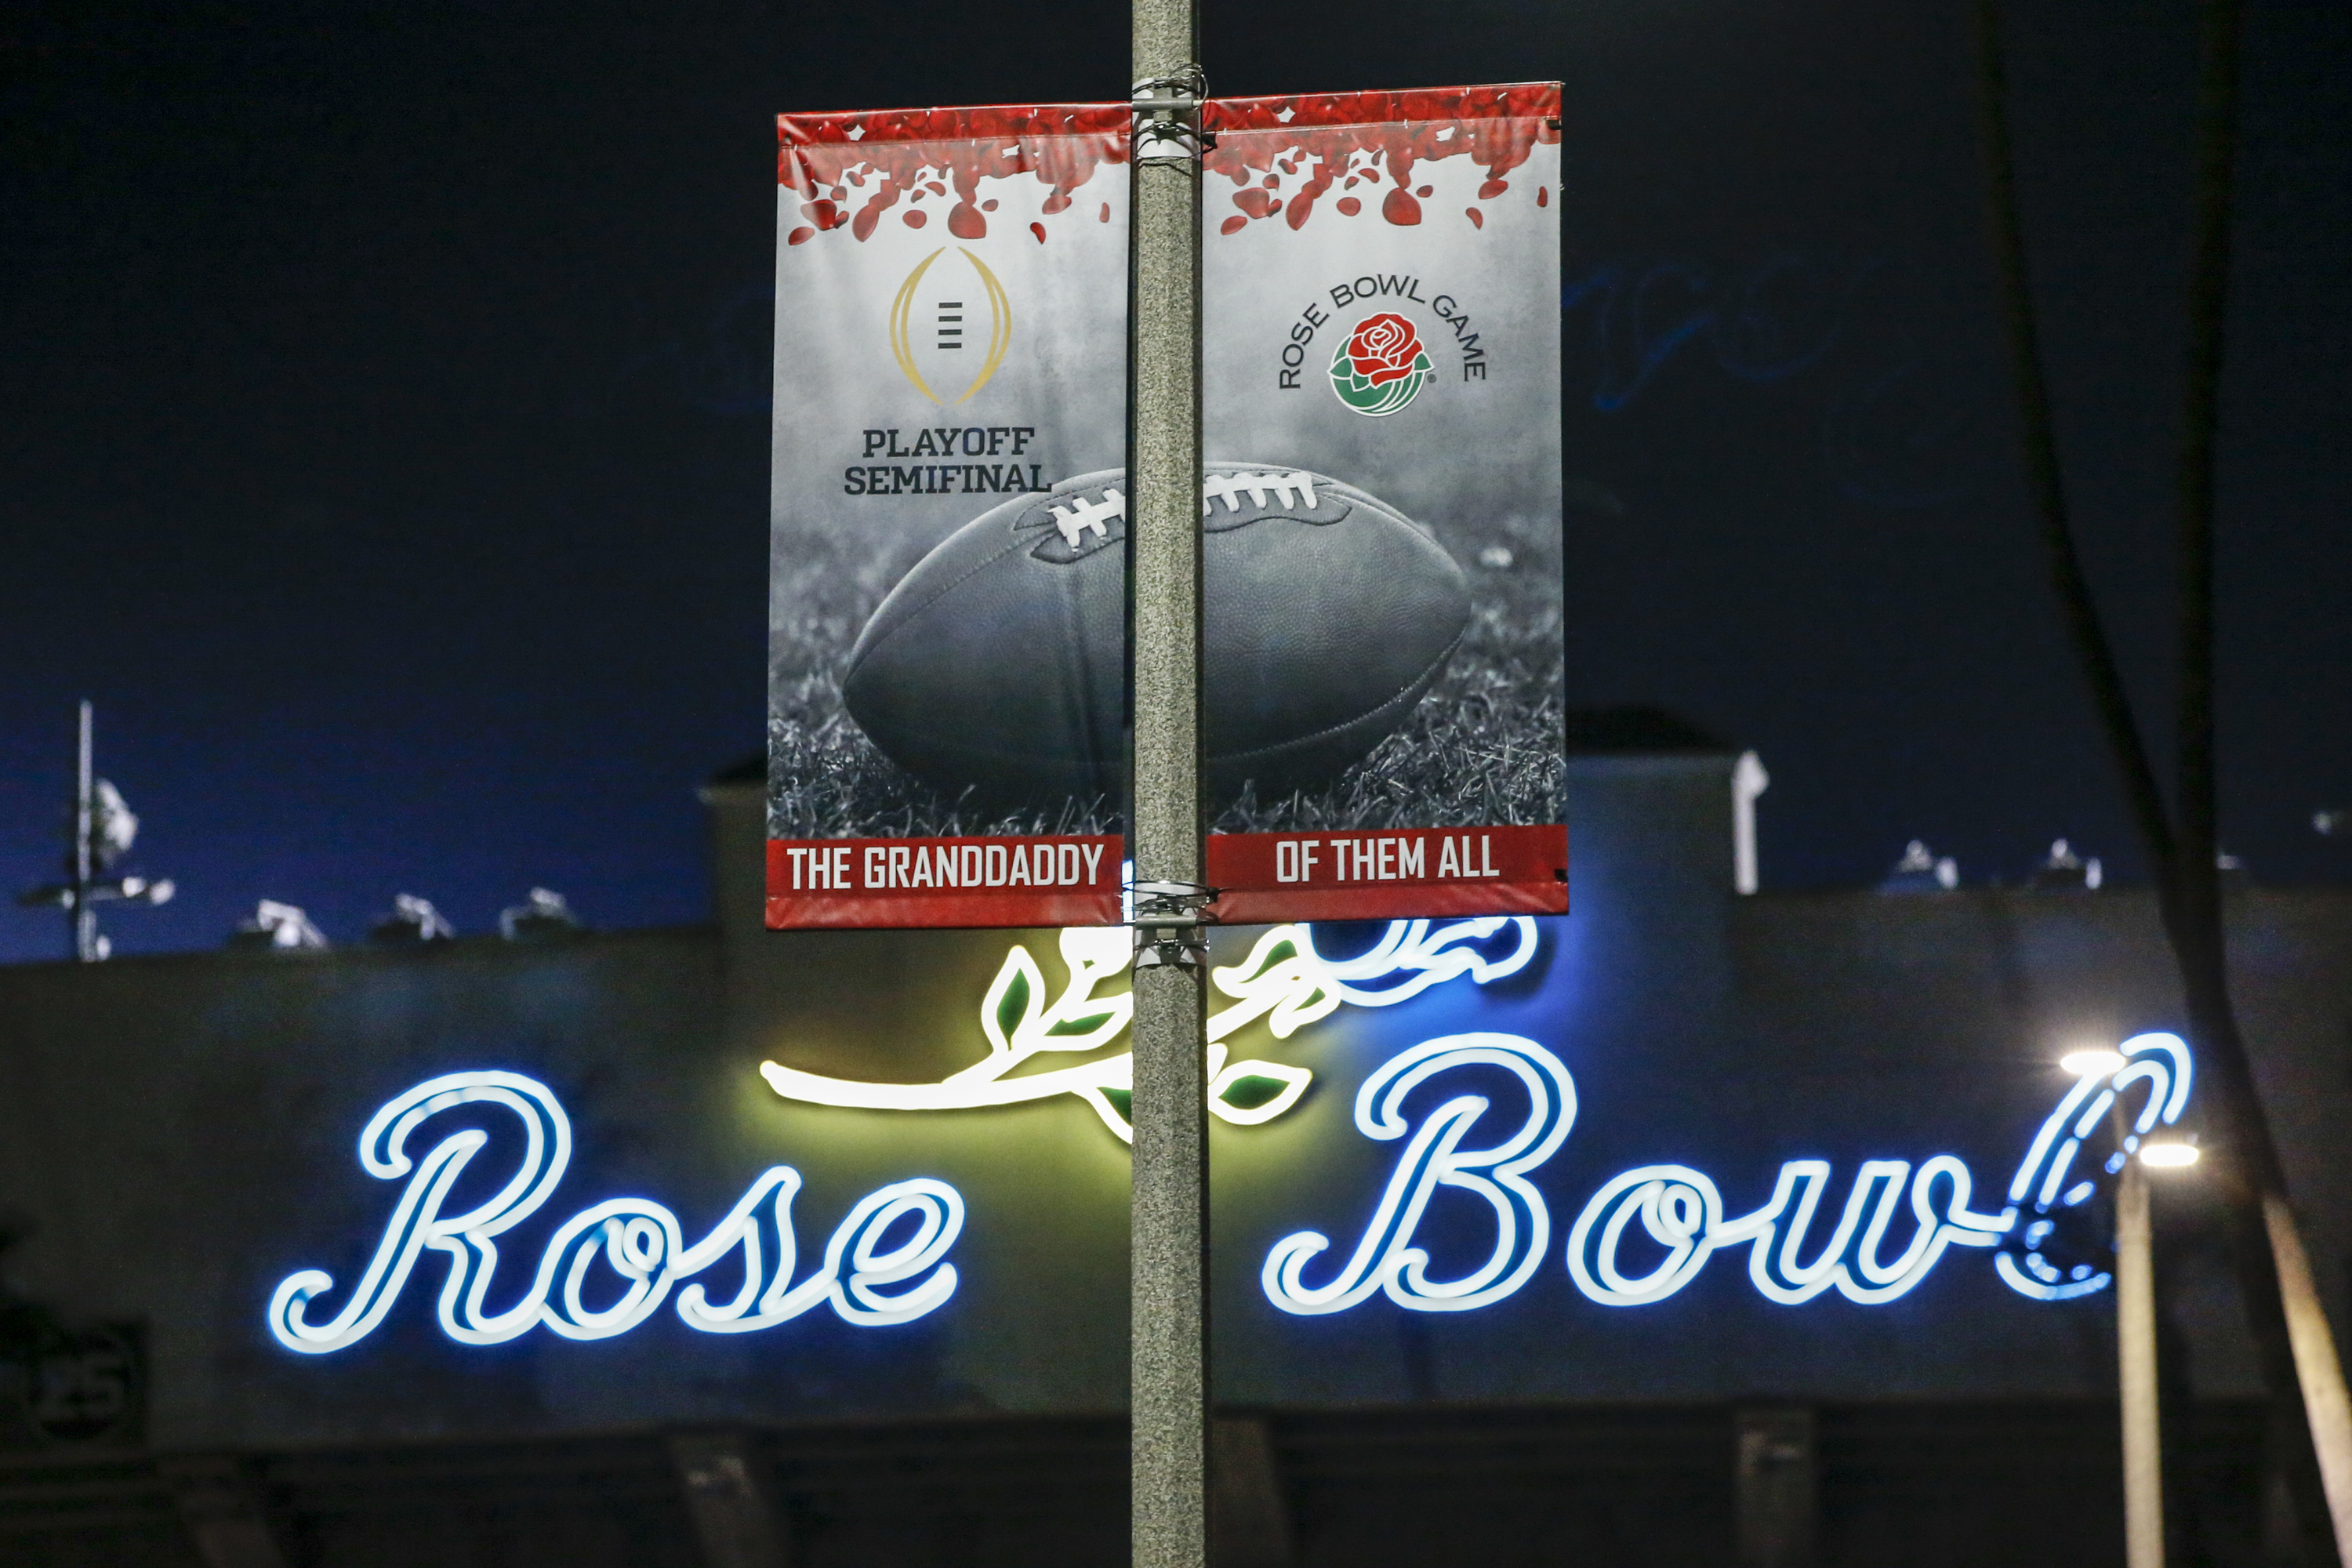 Rose bowl betting line 2021 rekar betting